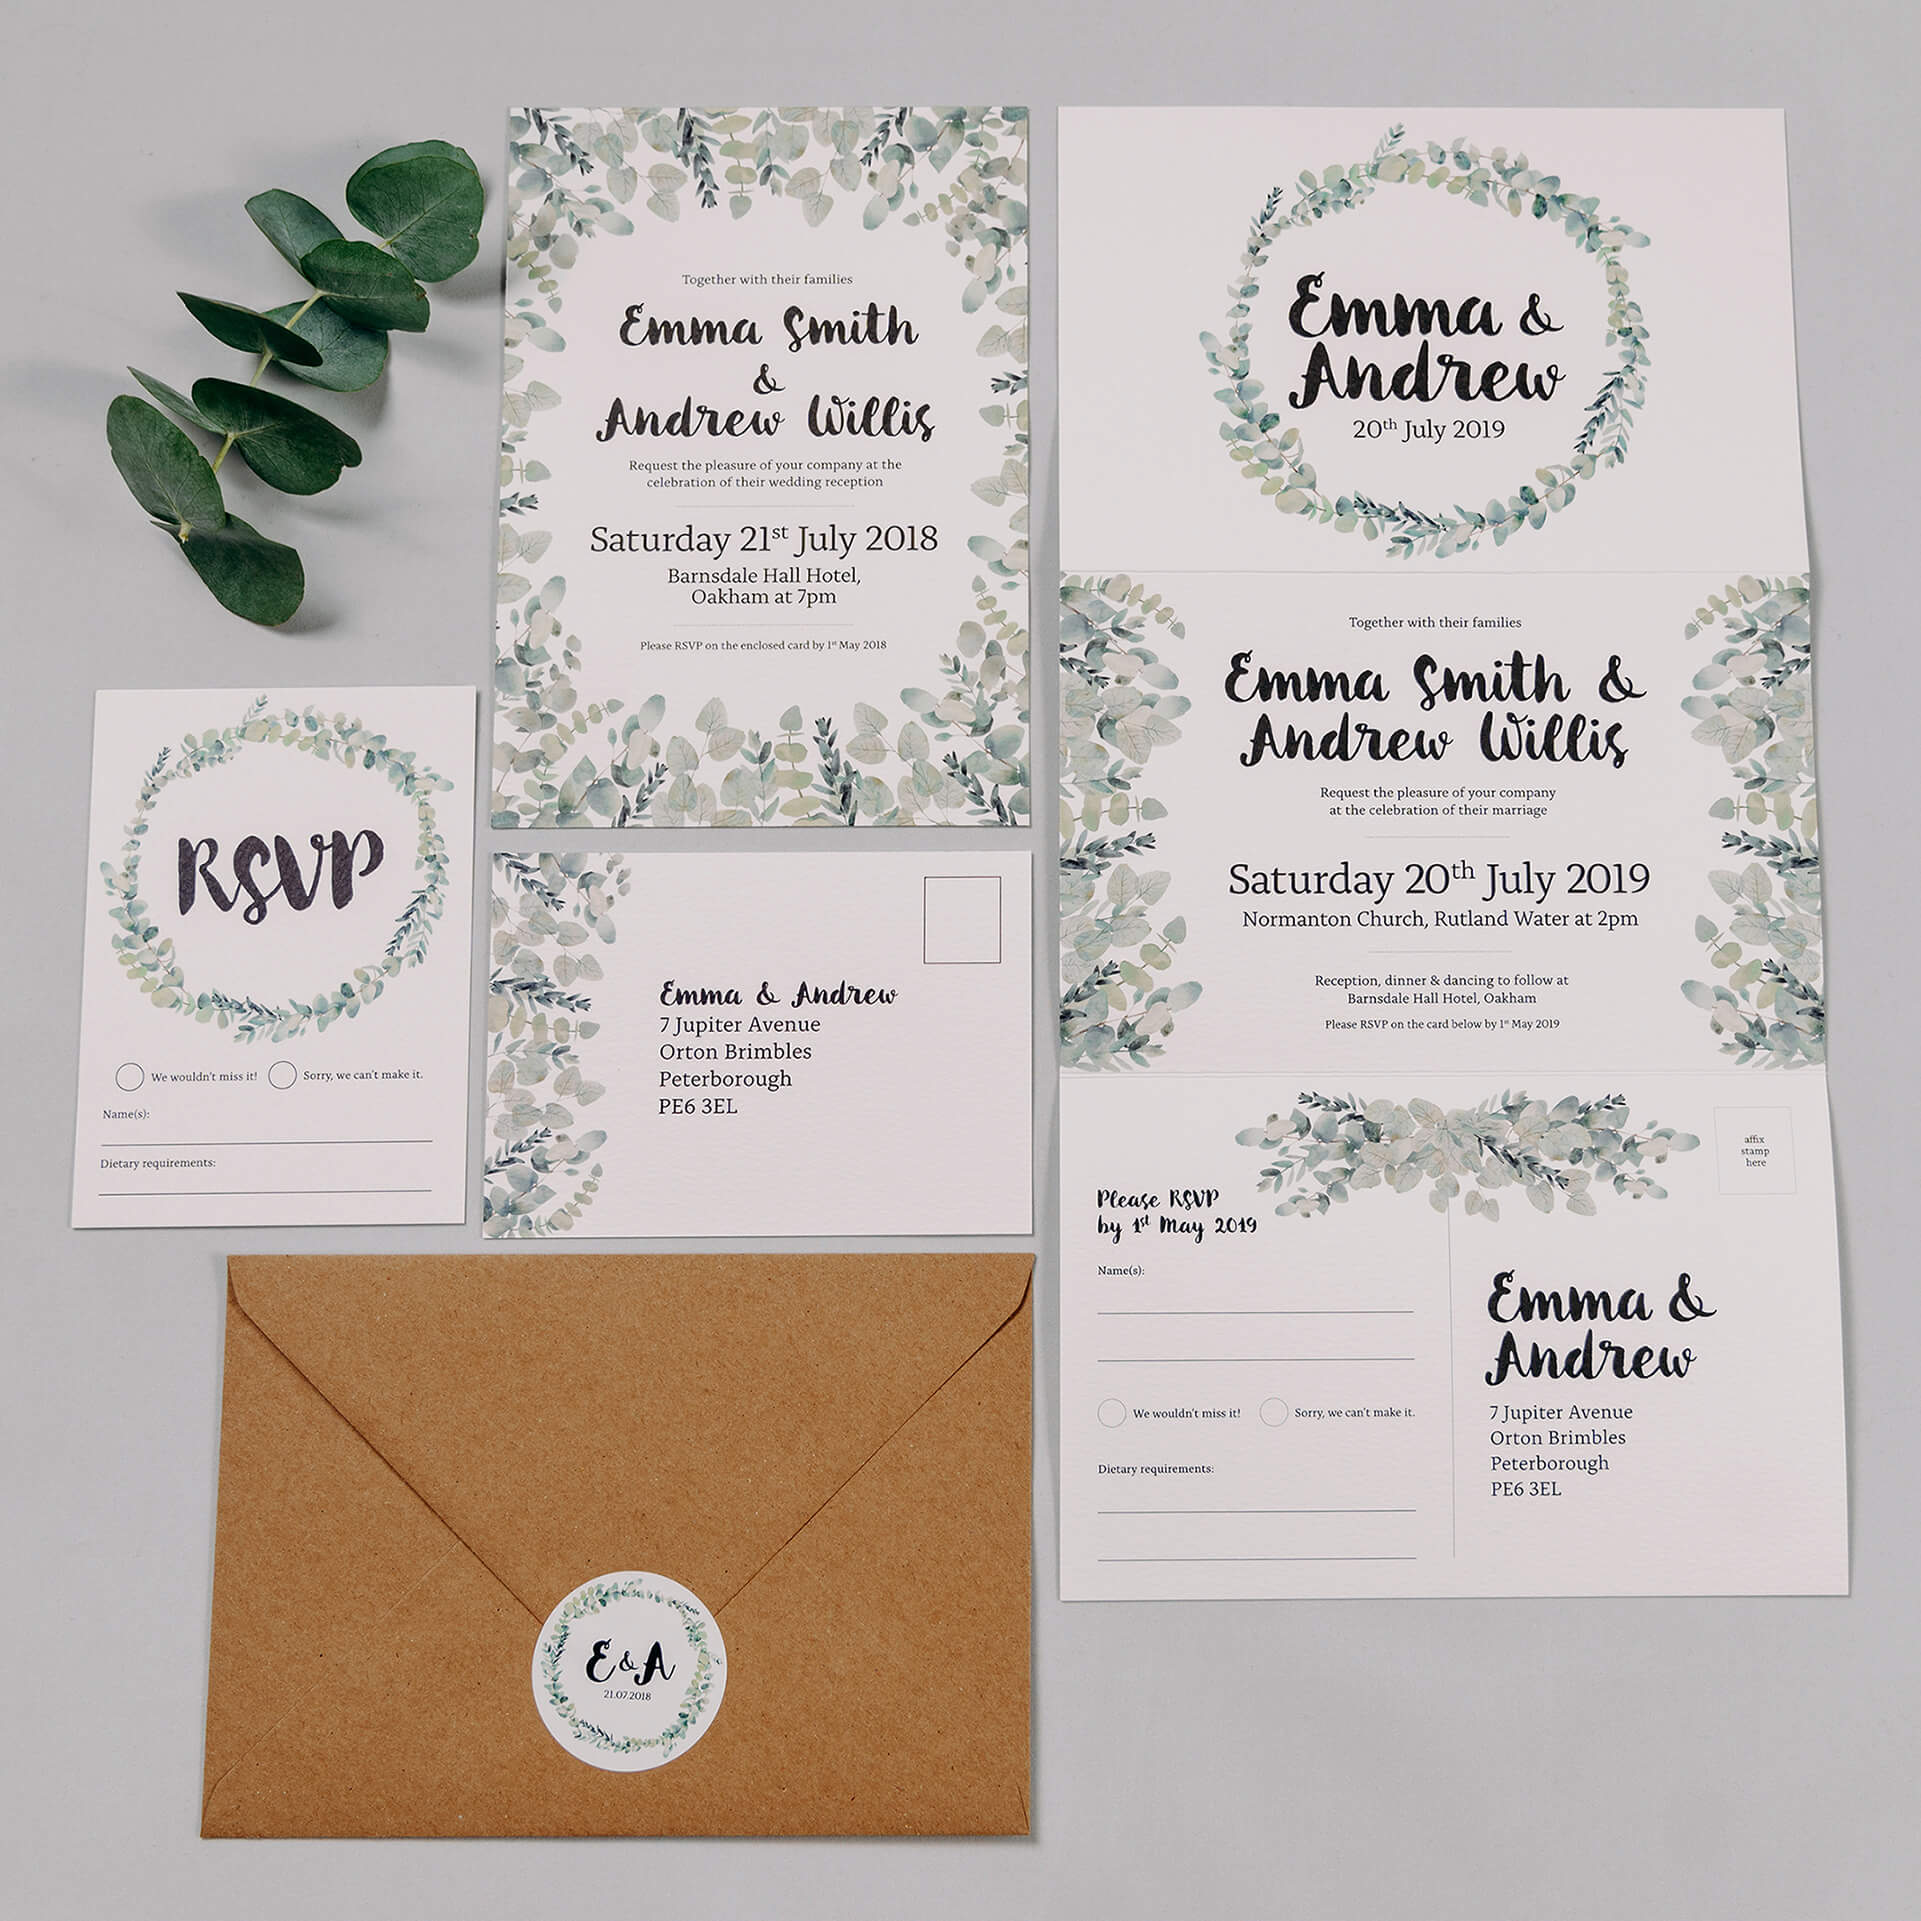 Rustic Green & White Eucalyptus Wedding Invitation Stationery Suite